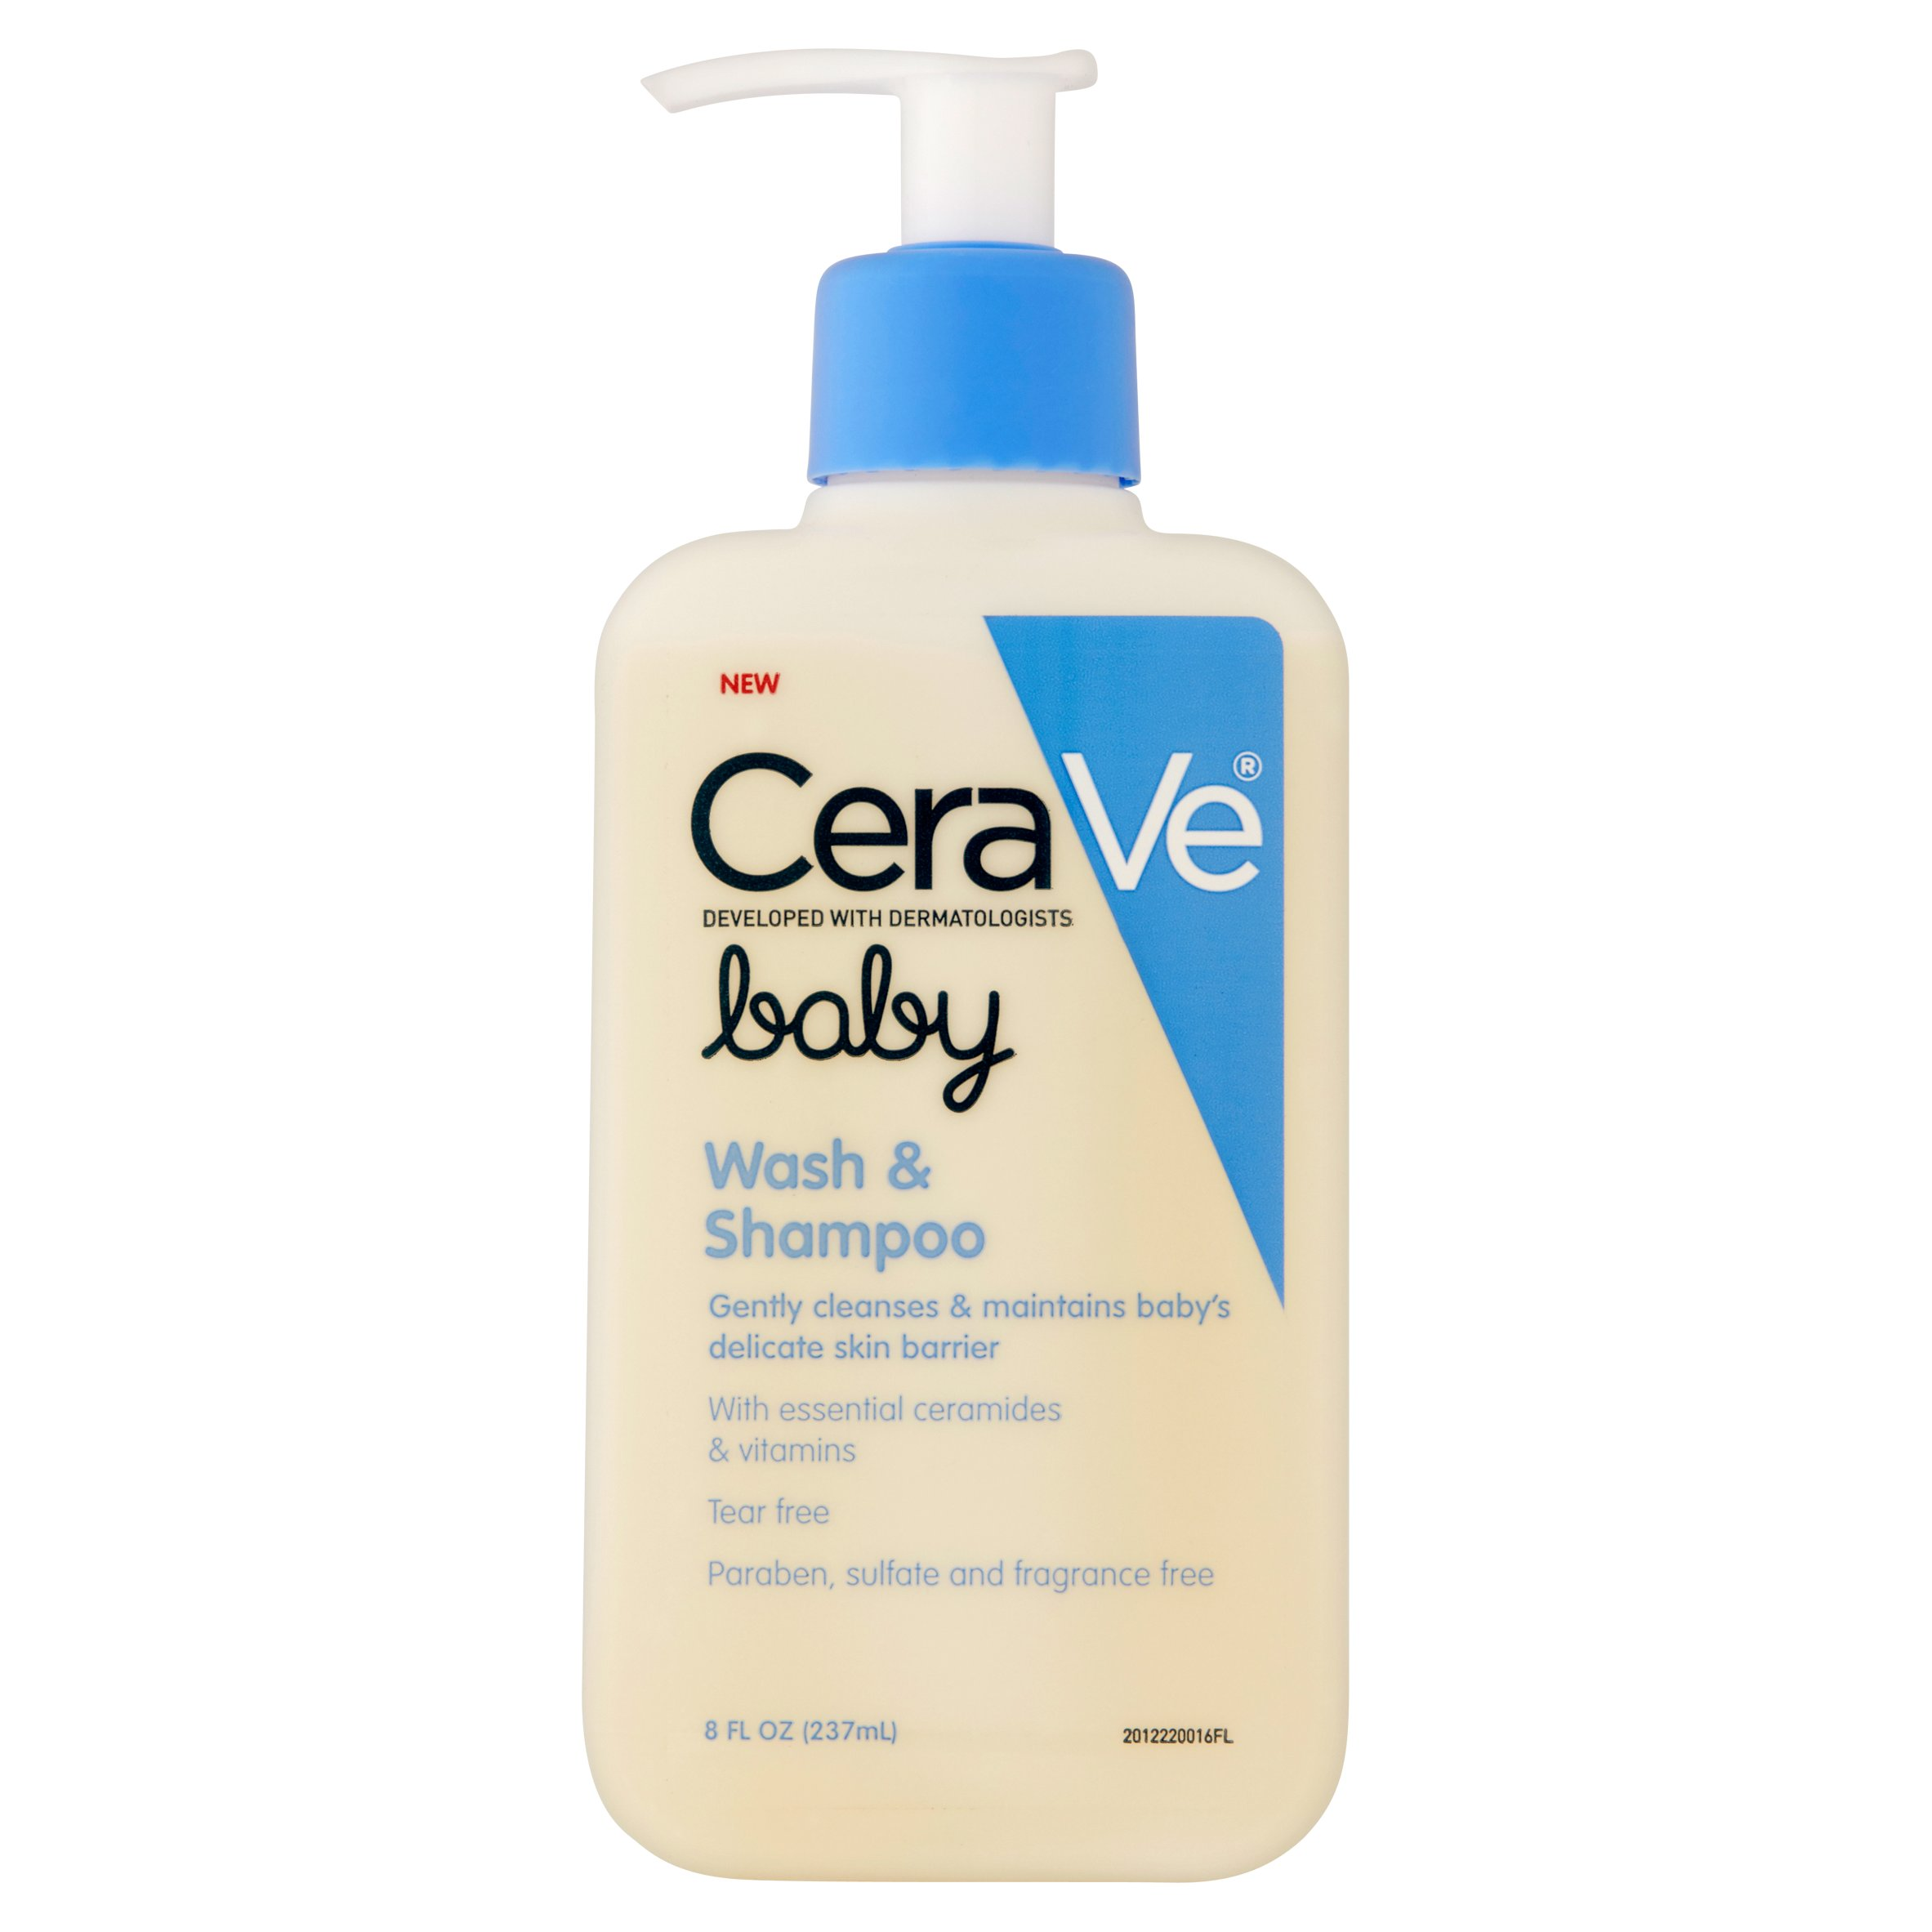 CeraVe Baby Wash and Shampoo, 8 oz by Valeant Pharmaceuticals North America LLC